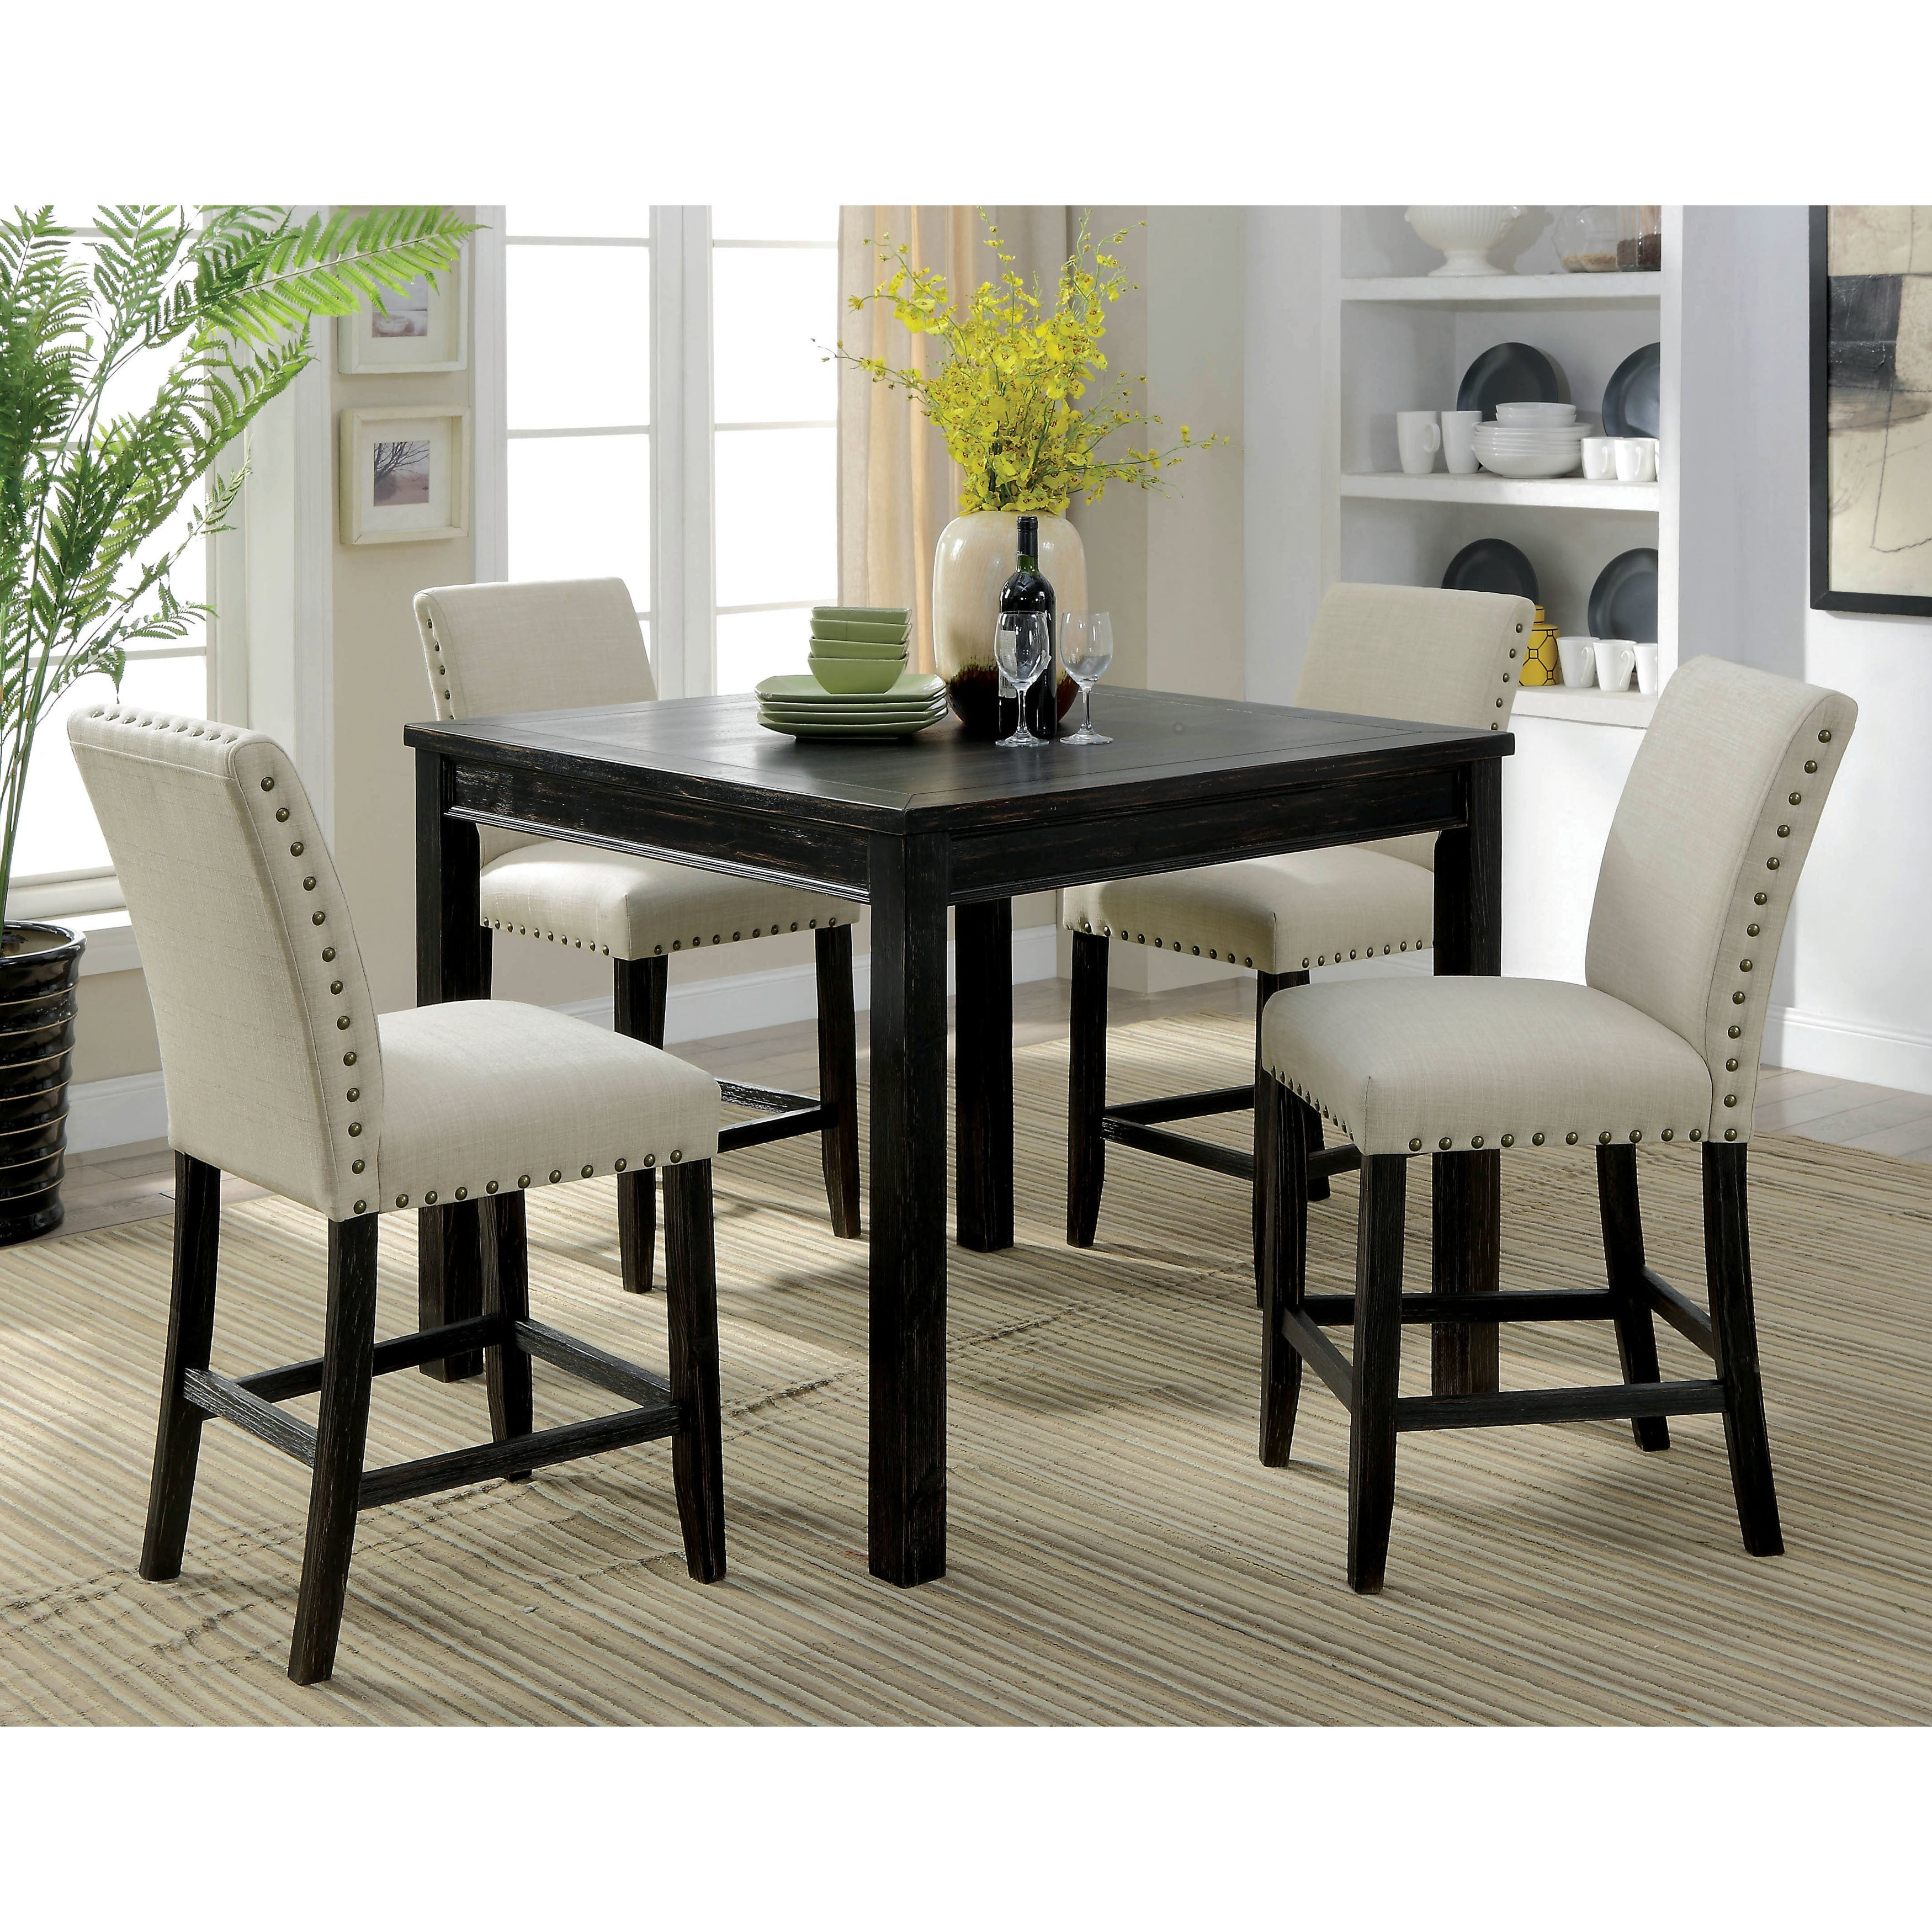 shop delewarn rustic antique black 5 piece counter height dining set